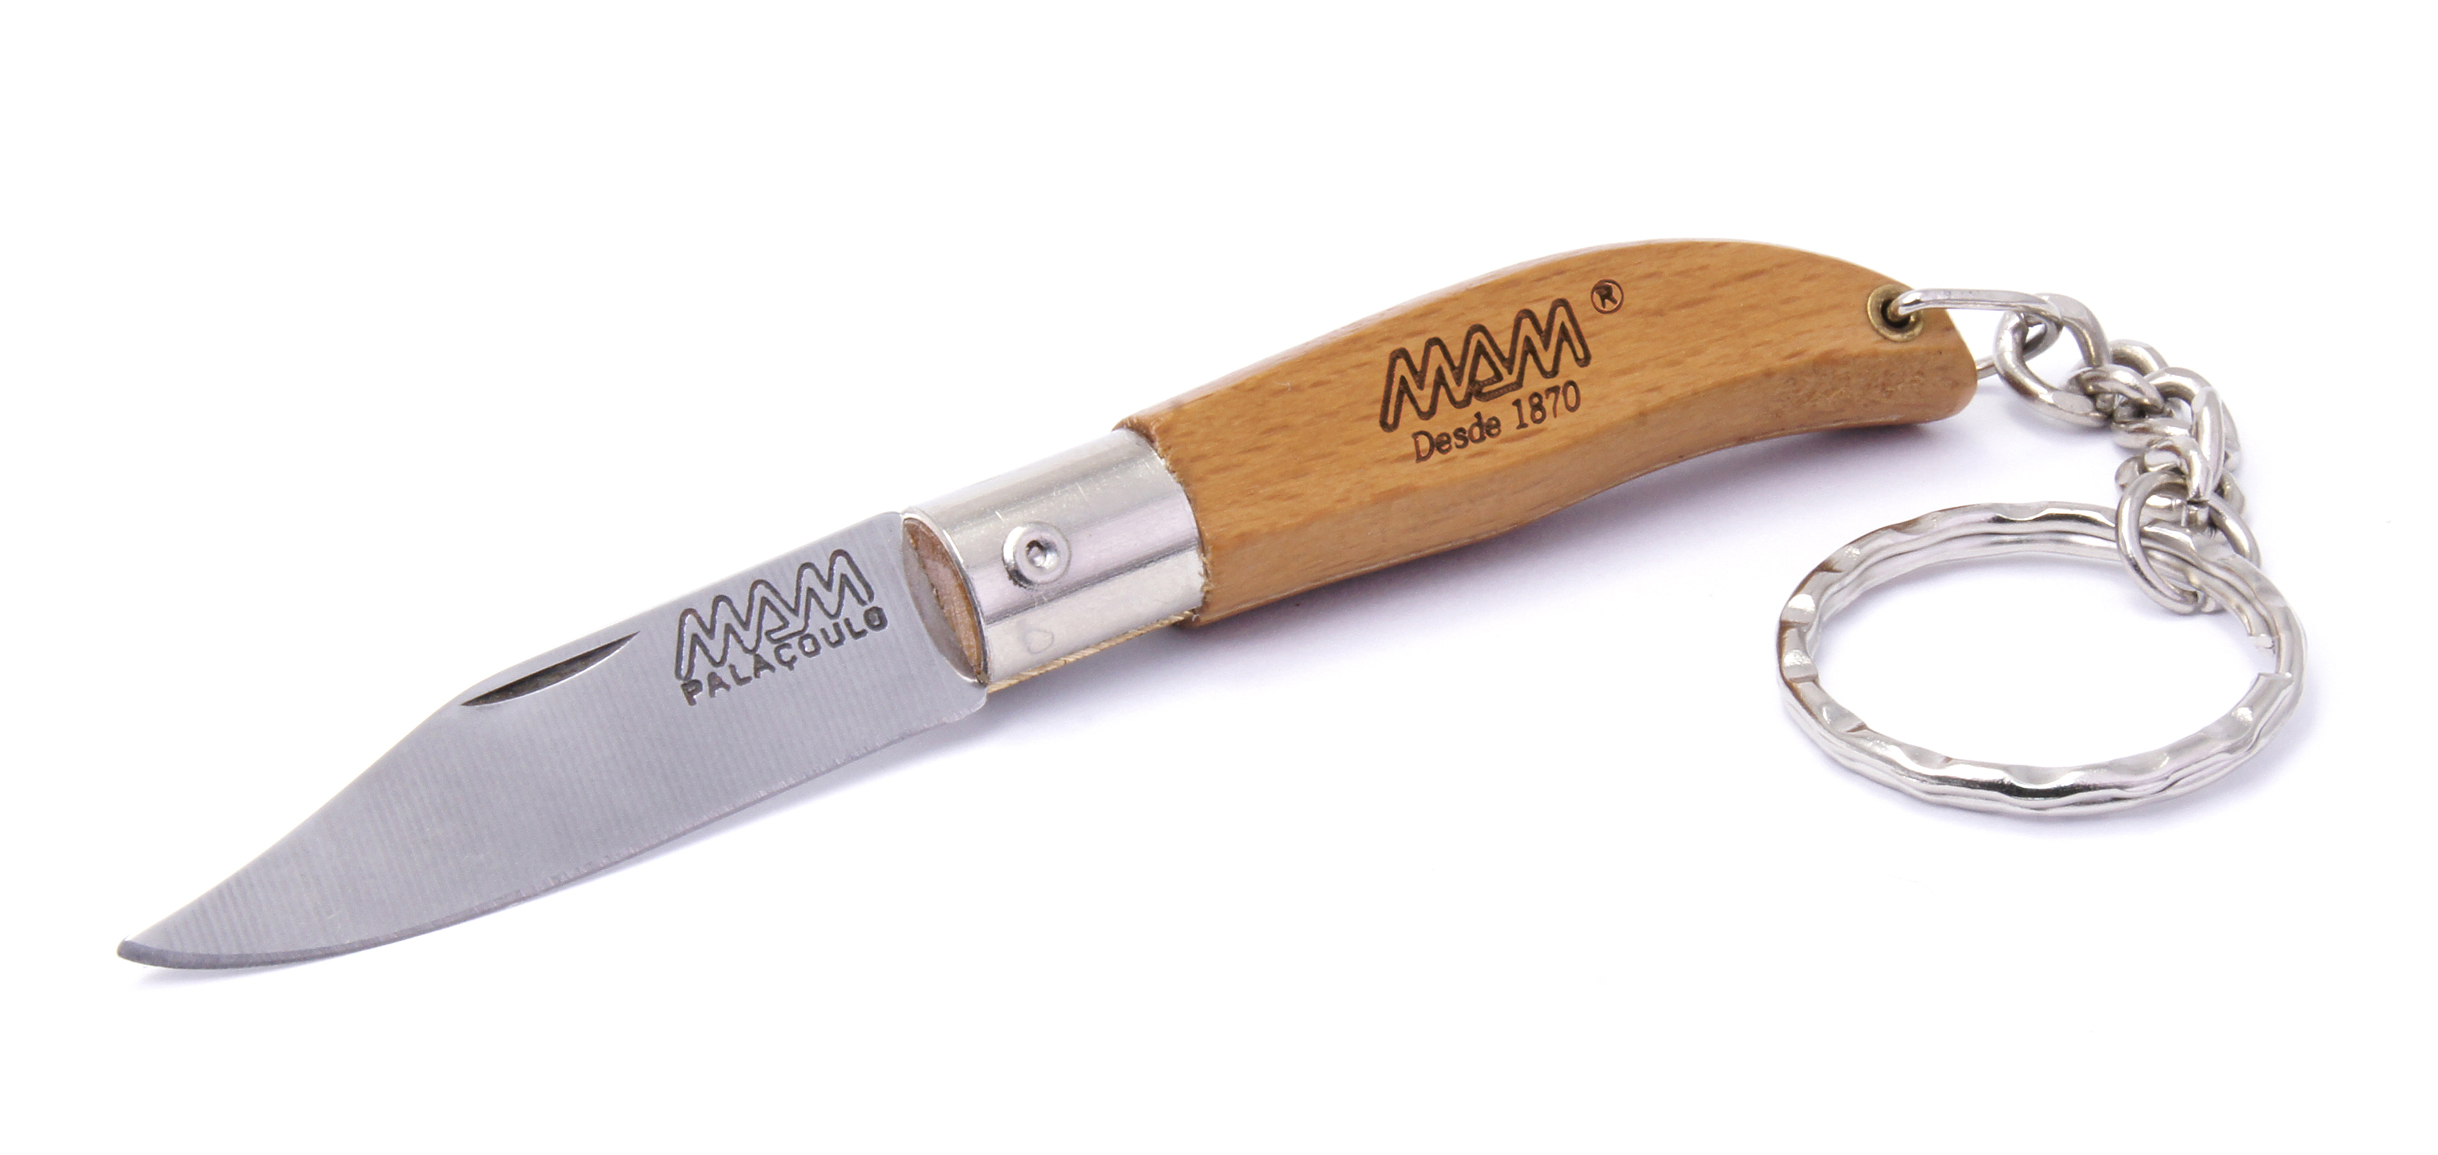 2000 - MAM IBERICA POCKET KNIFE WITH KEY RING 45mm